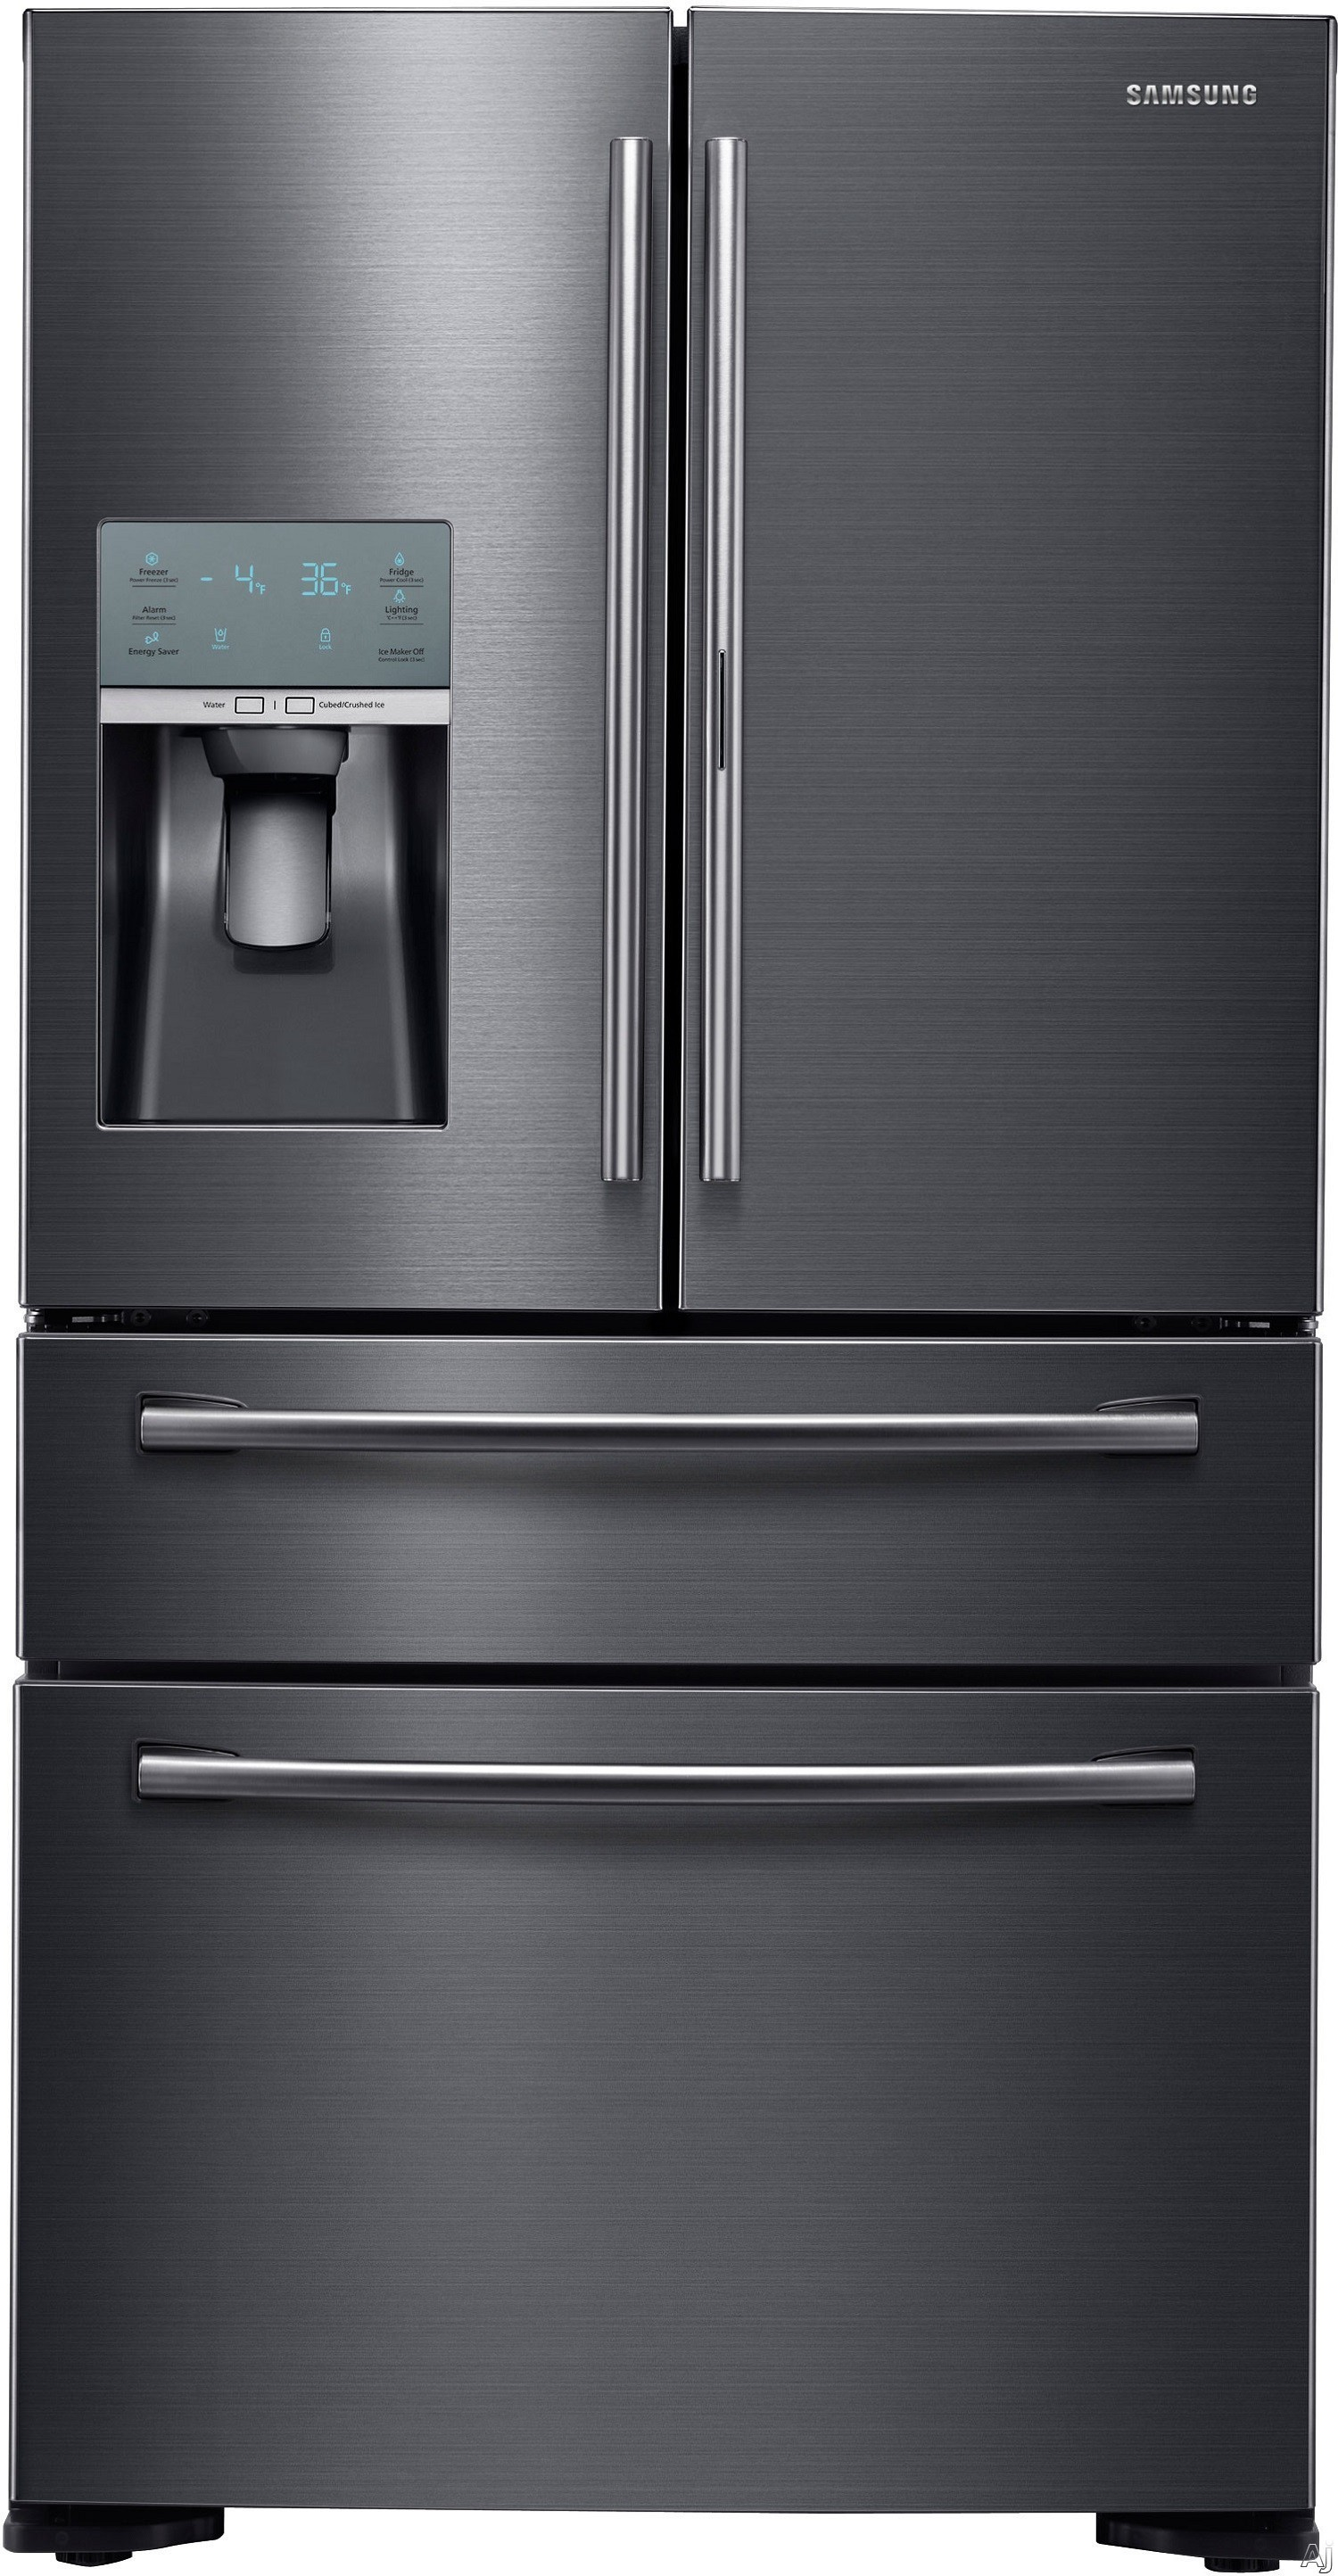 Samsung RF22KREDBS 36 Inch Counter Depth 4-Door French Door Refrigerator with 4-Temperature FlexZone Drawer, Food Showcase Door, Twin Cooling Plus, 22.4 cu. ft. Total Capacity, Large Freezer Drawer, Ice Master Ice Maker and External Water/Ice Dispenser